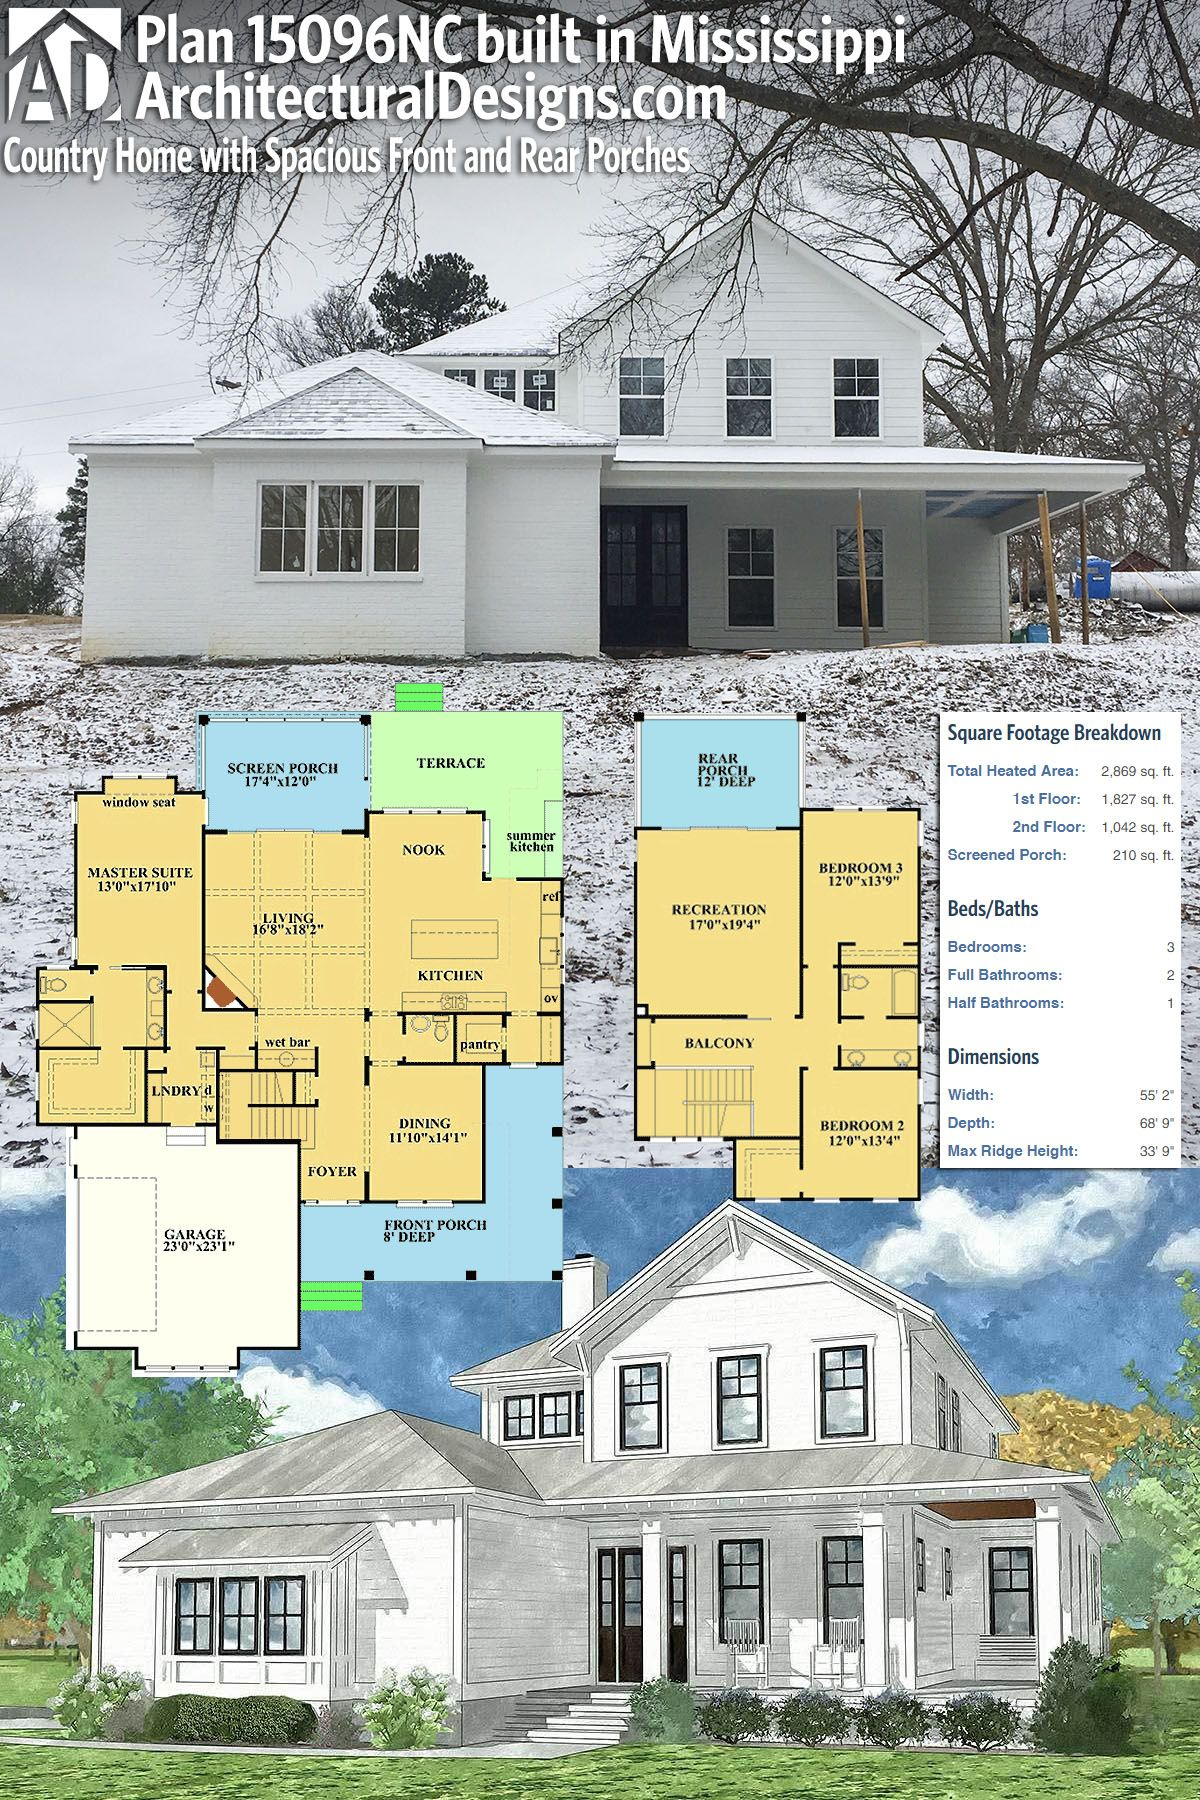 Home Plan Designs Mississippi on garden plans, commercial architecture plans, home design projects, home energy plans, home decorating, home modern house design, home design story, home design games, home architecture plans, home design software, home design planning, home design tips, home building plans, home design principles, engineering plans, floor plans, bathroom plans, house plans, construction plans, home hardware plans,